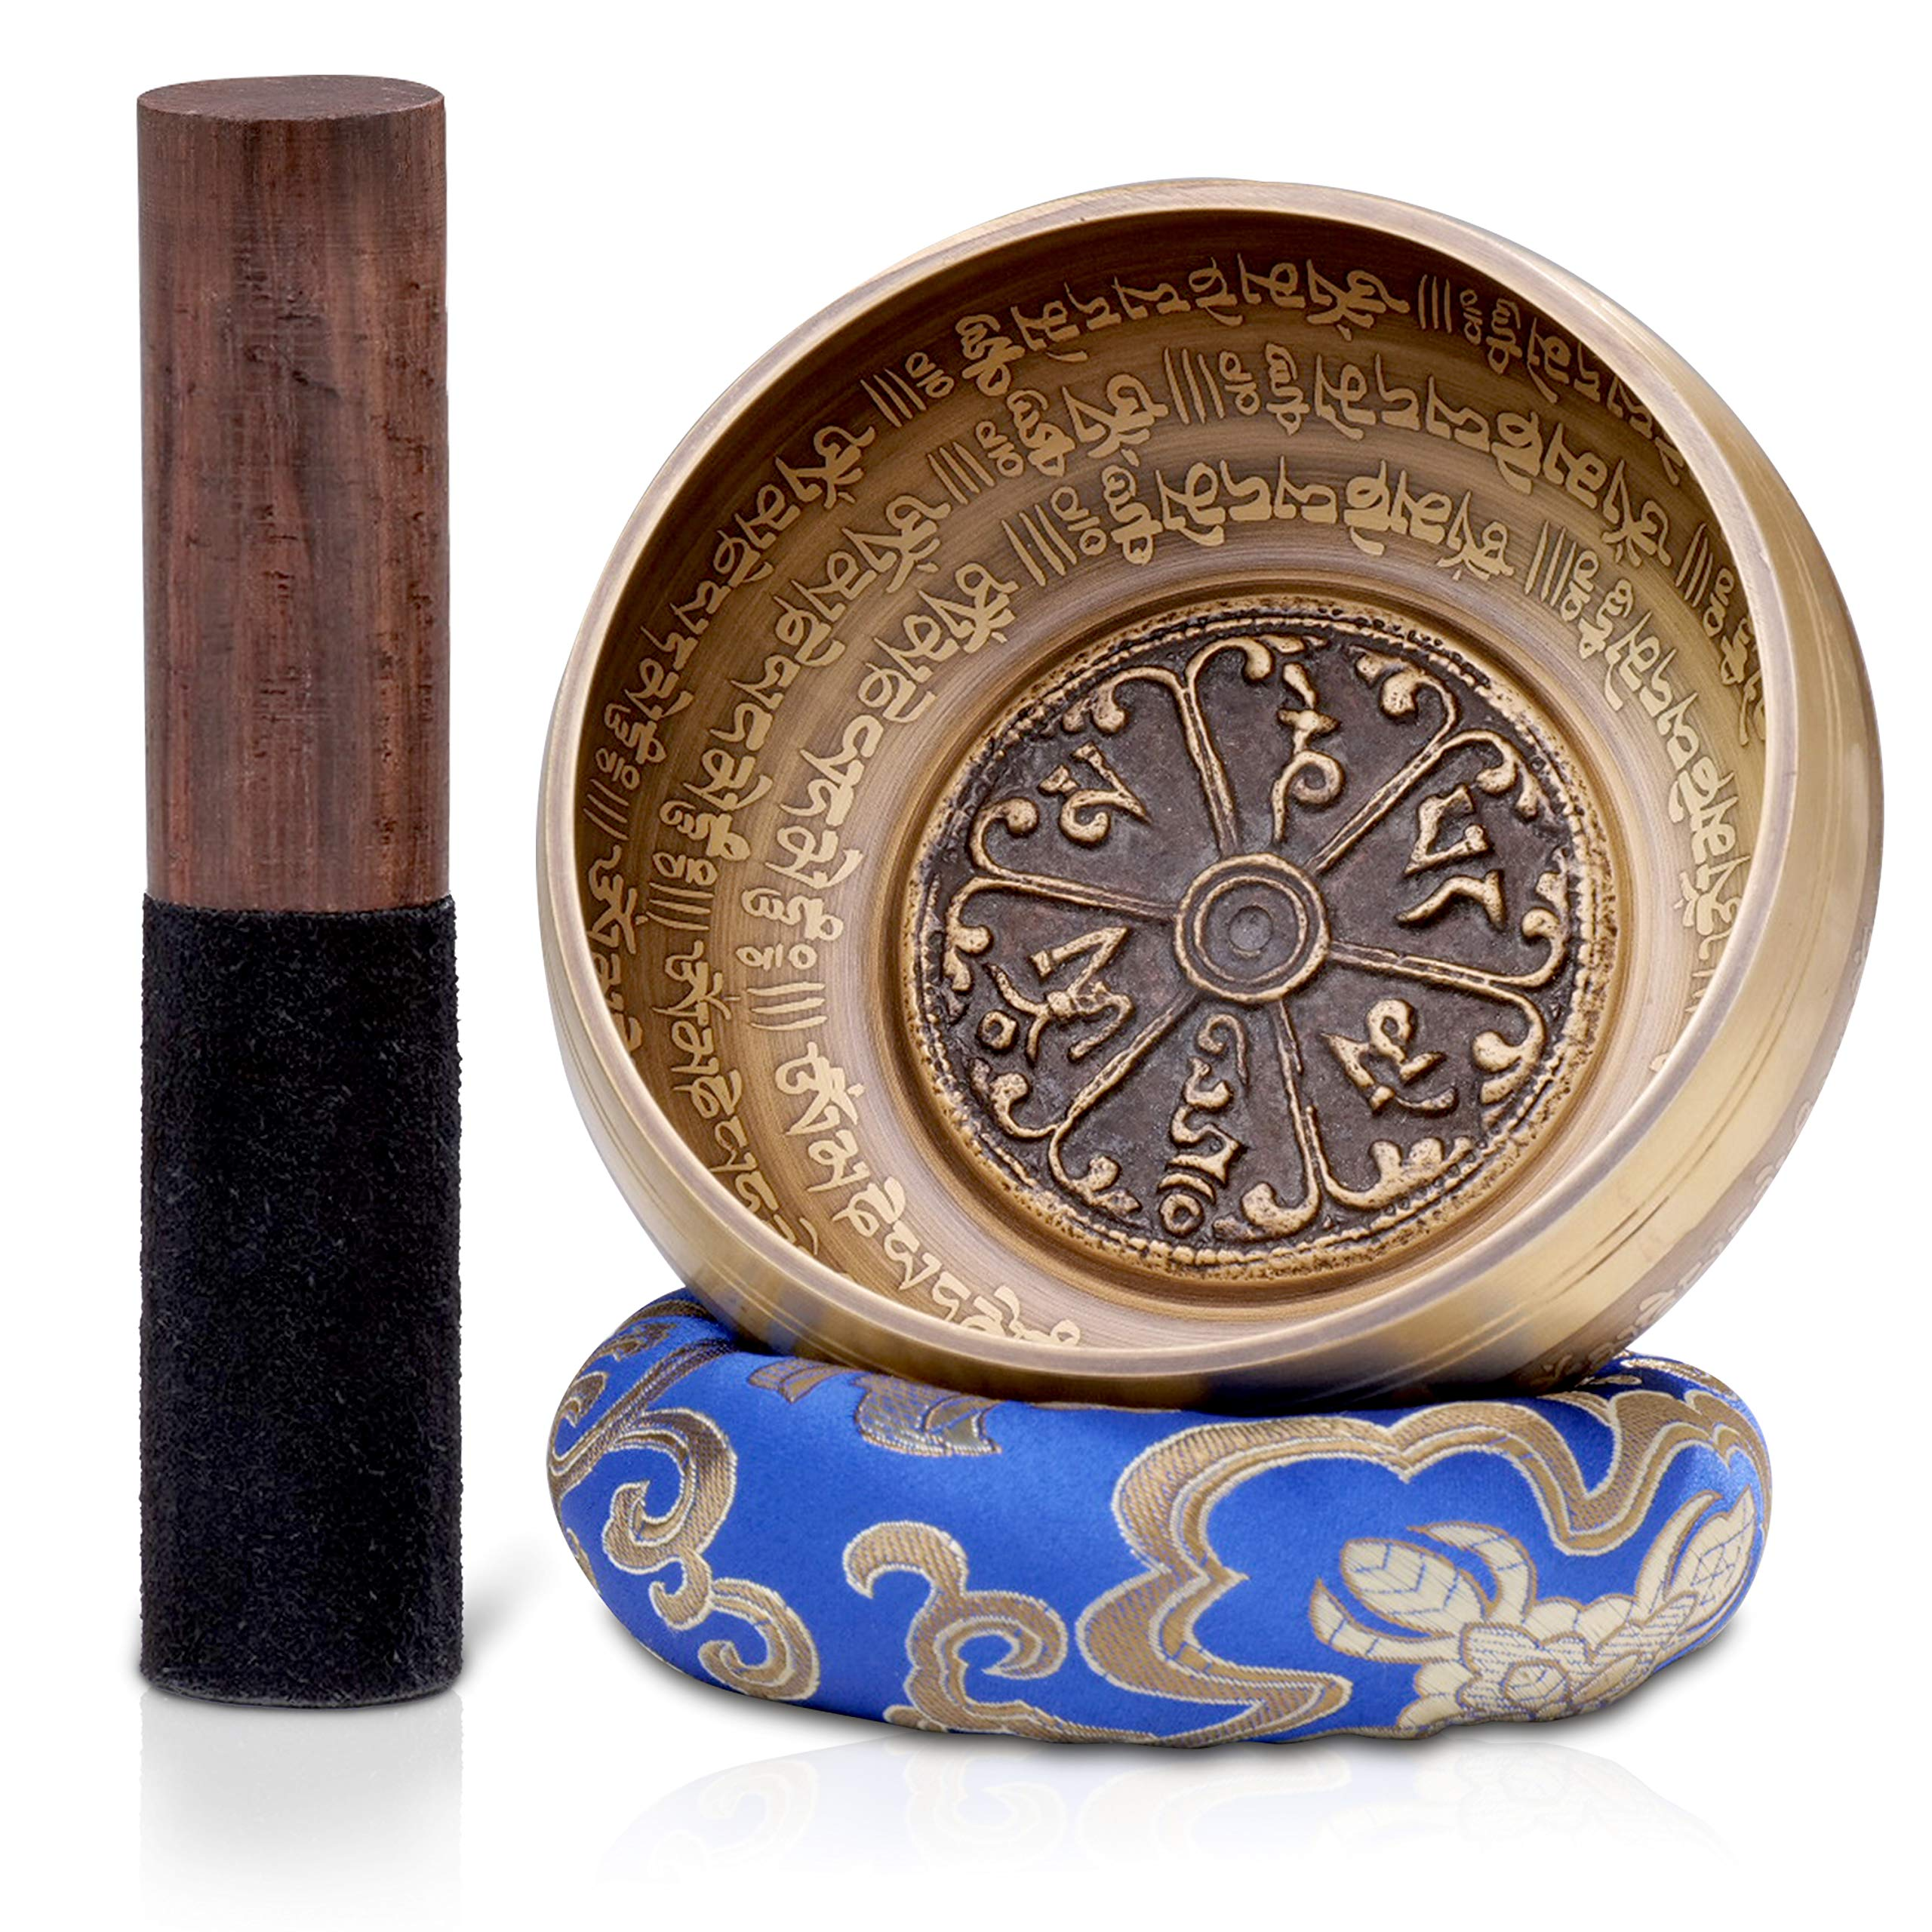 Dhyana House Tibetan Meditation Singing Bowl Set With Mallet,Ring Slik Cushion and Large Travel Box for Yoga, Healing, Reiki, Zen, Relaxation, Chakra and Music Handmade in Nepal (5 Inch, Blue) by Dhyana House